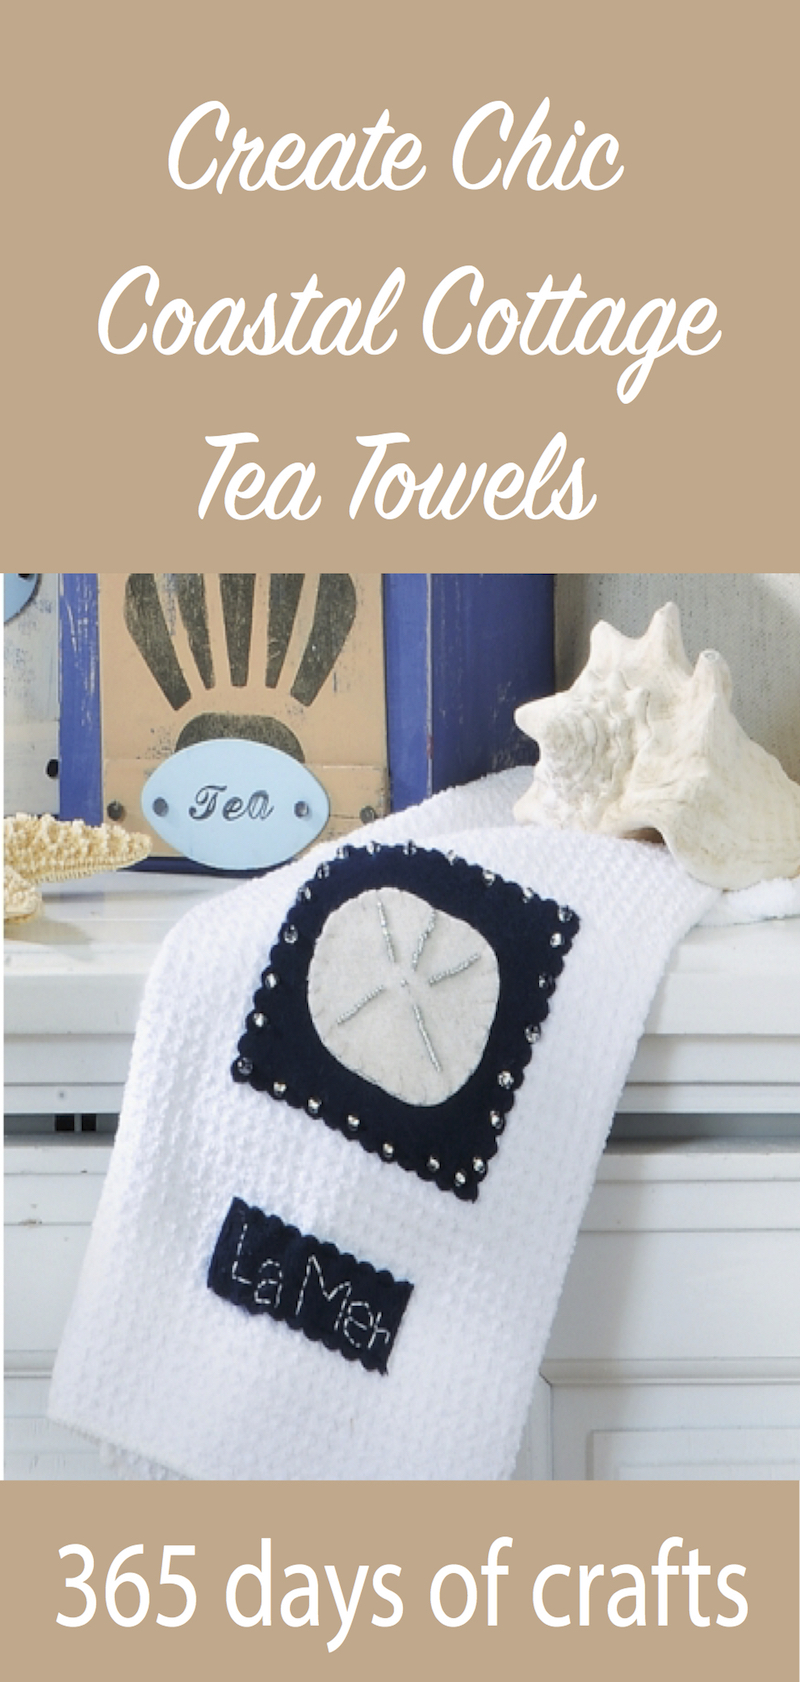 picture regarding Printable Towels called Crank out stylish seashore cottage tea towels with absolutely free printable behavior